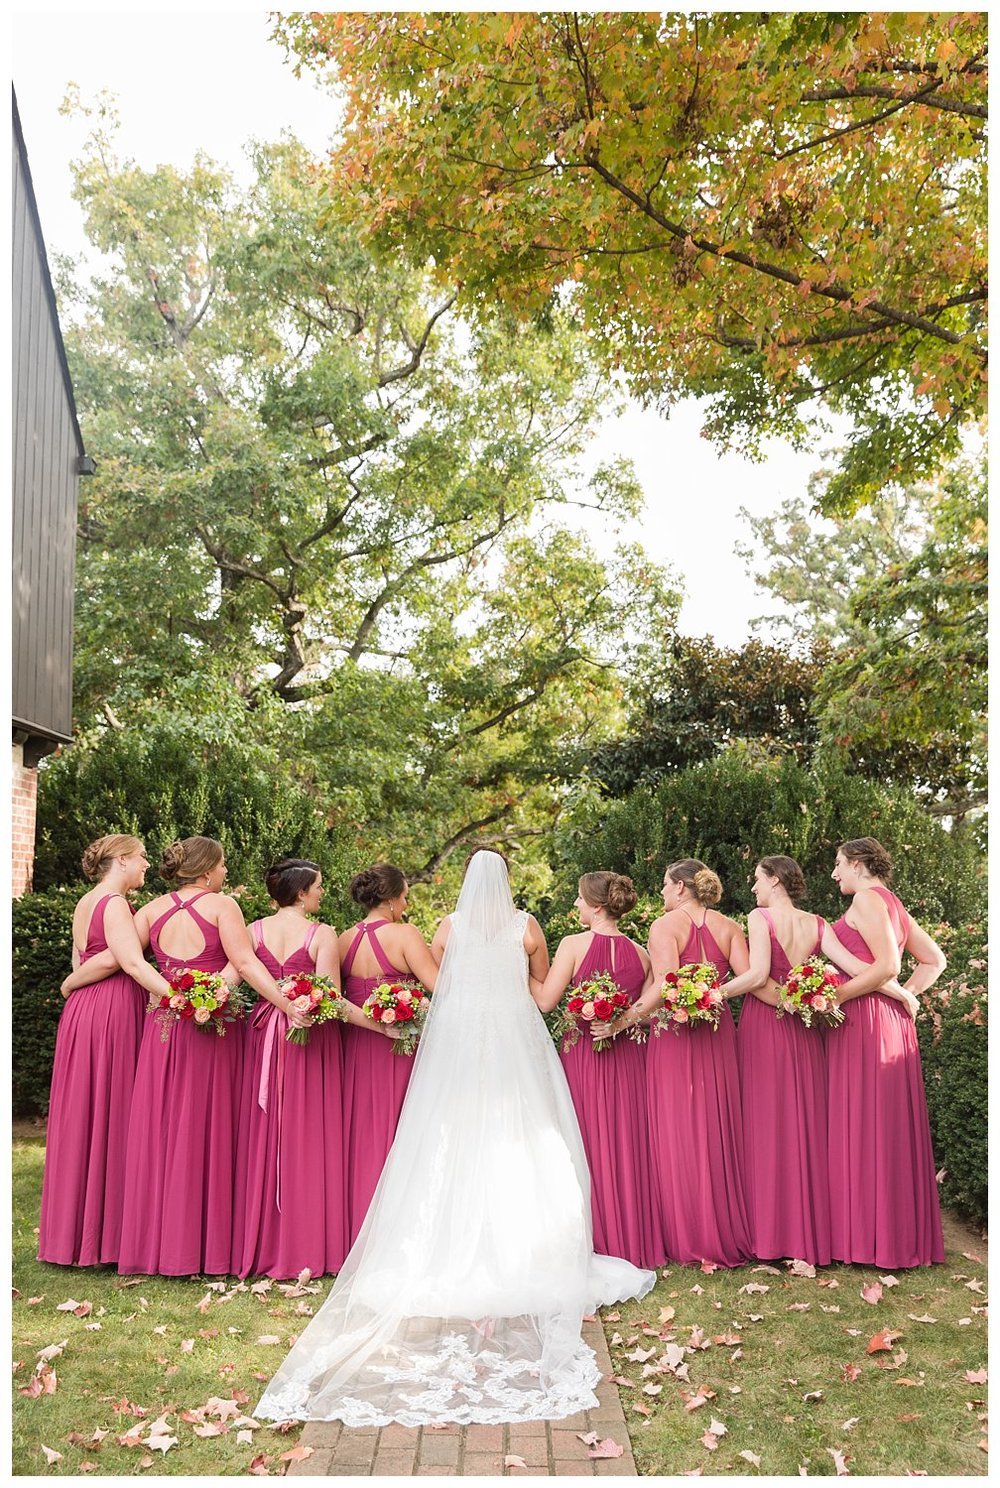 elovephotos gaie lea staunton virginia fall wedding photography_1120.jpg